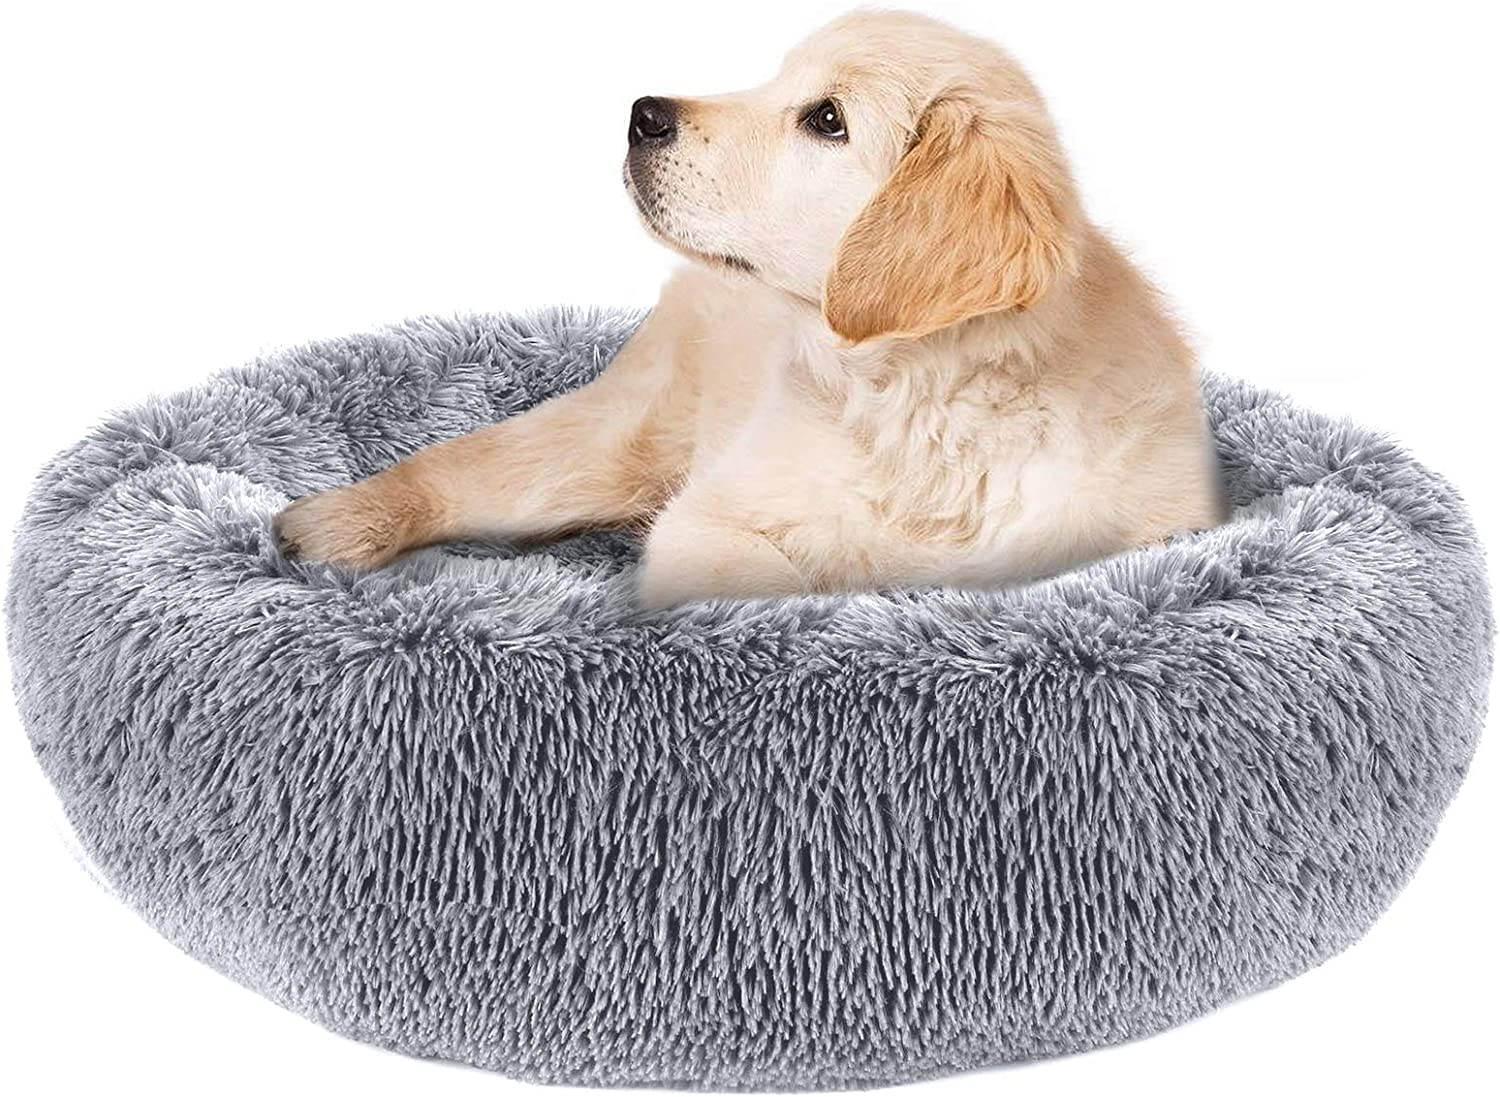 PJYuCien Calming Dog Bed Cat Large Max 66% OFF Branded goods Beds S Small Medium Pet